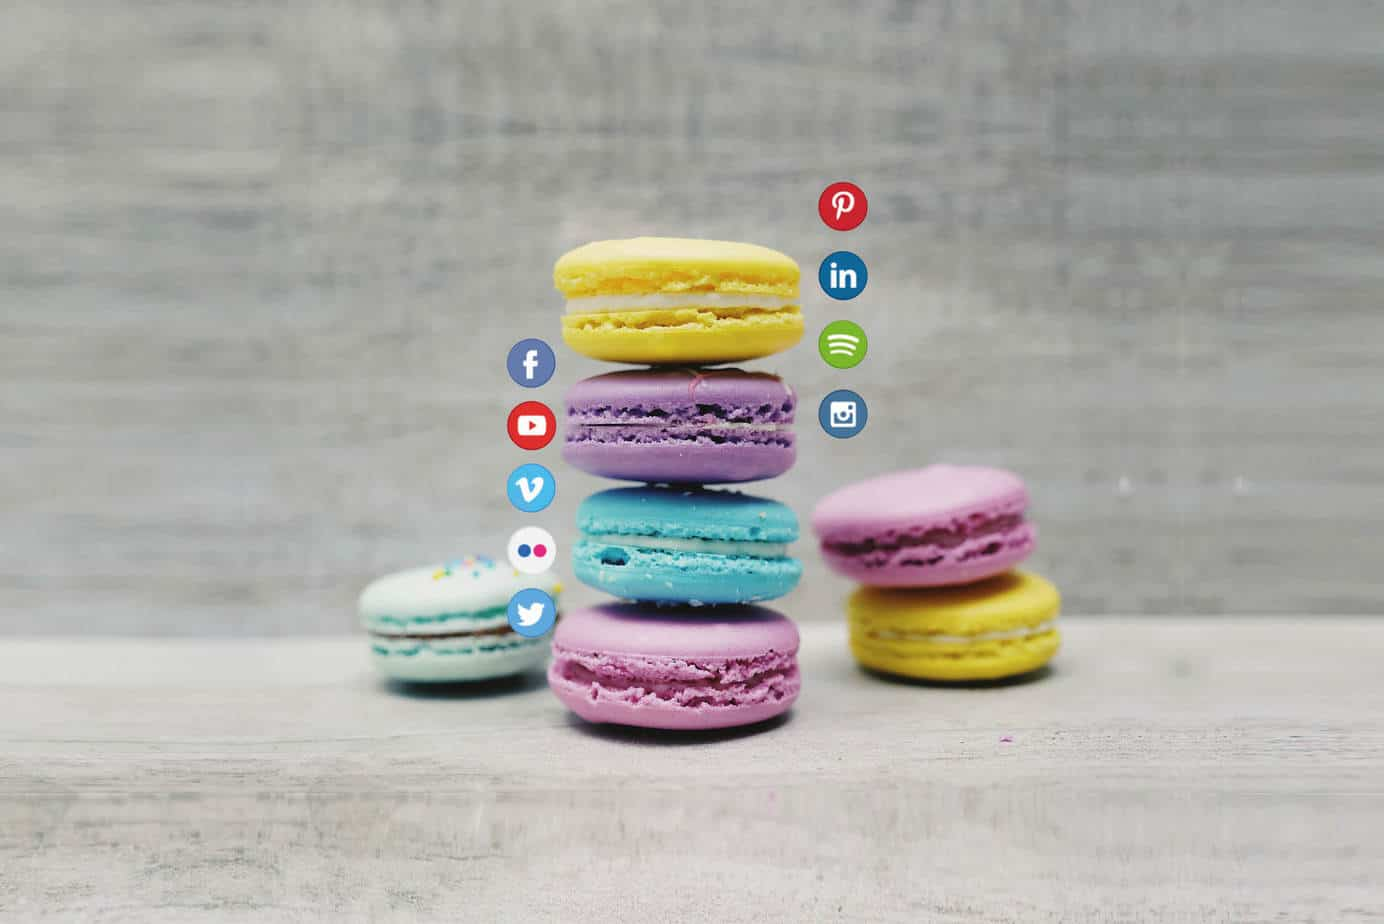 A Design agency image of macaroons with social media logos on